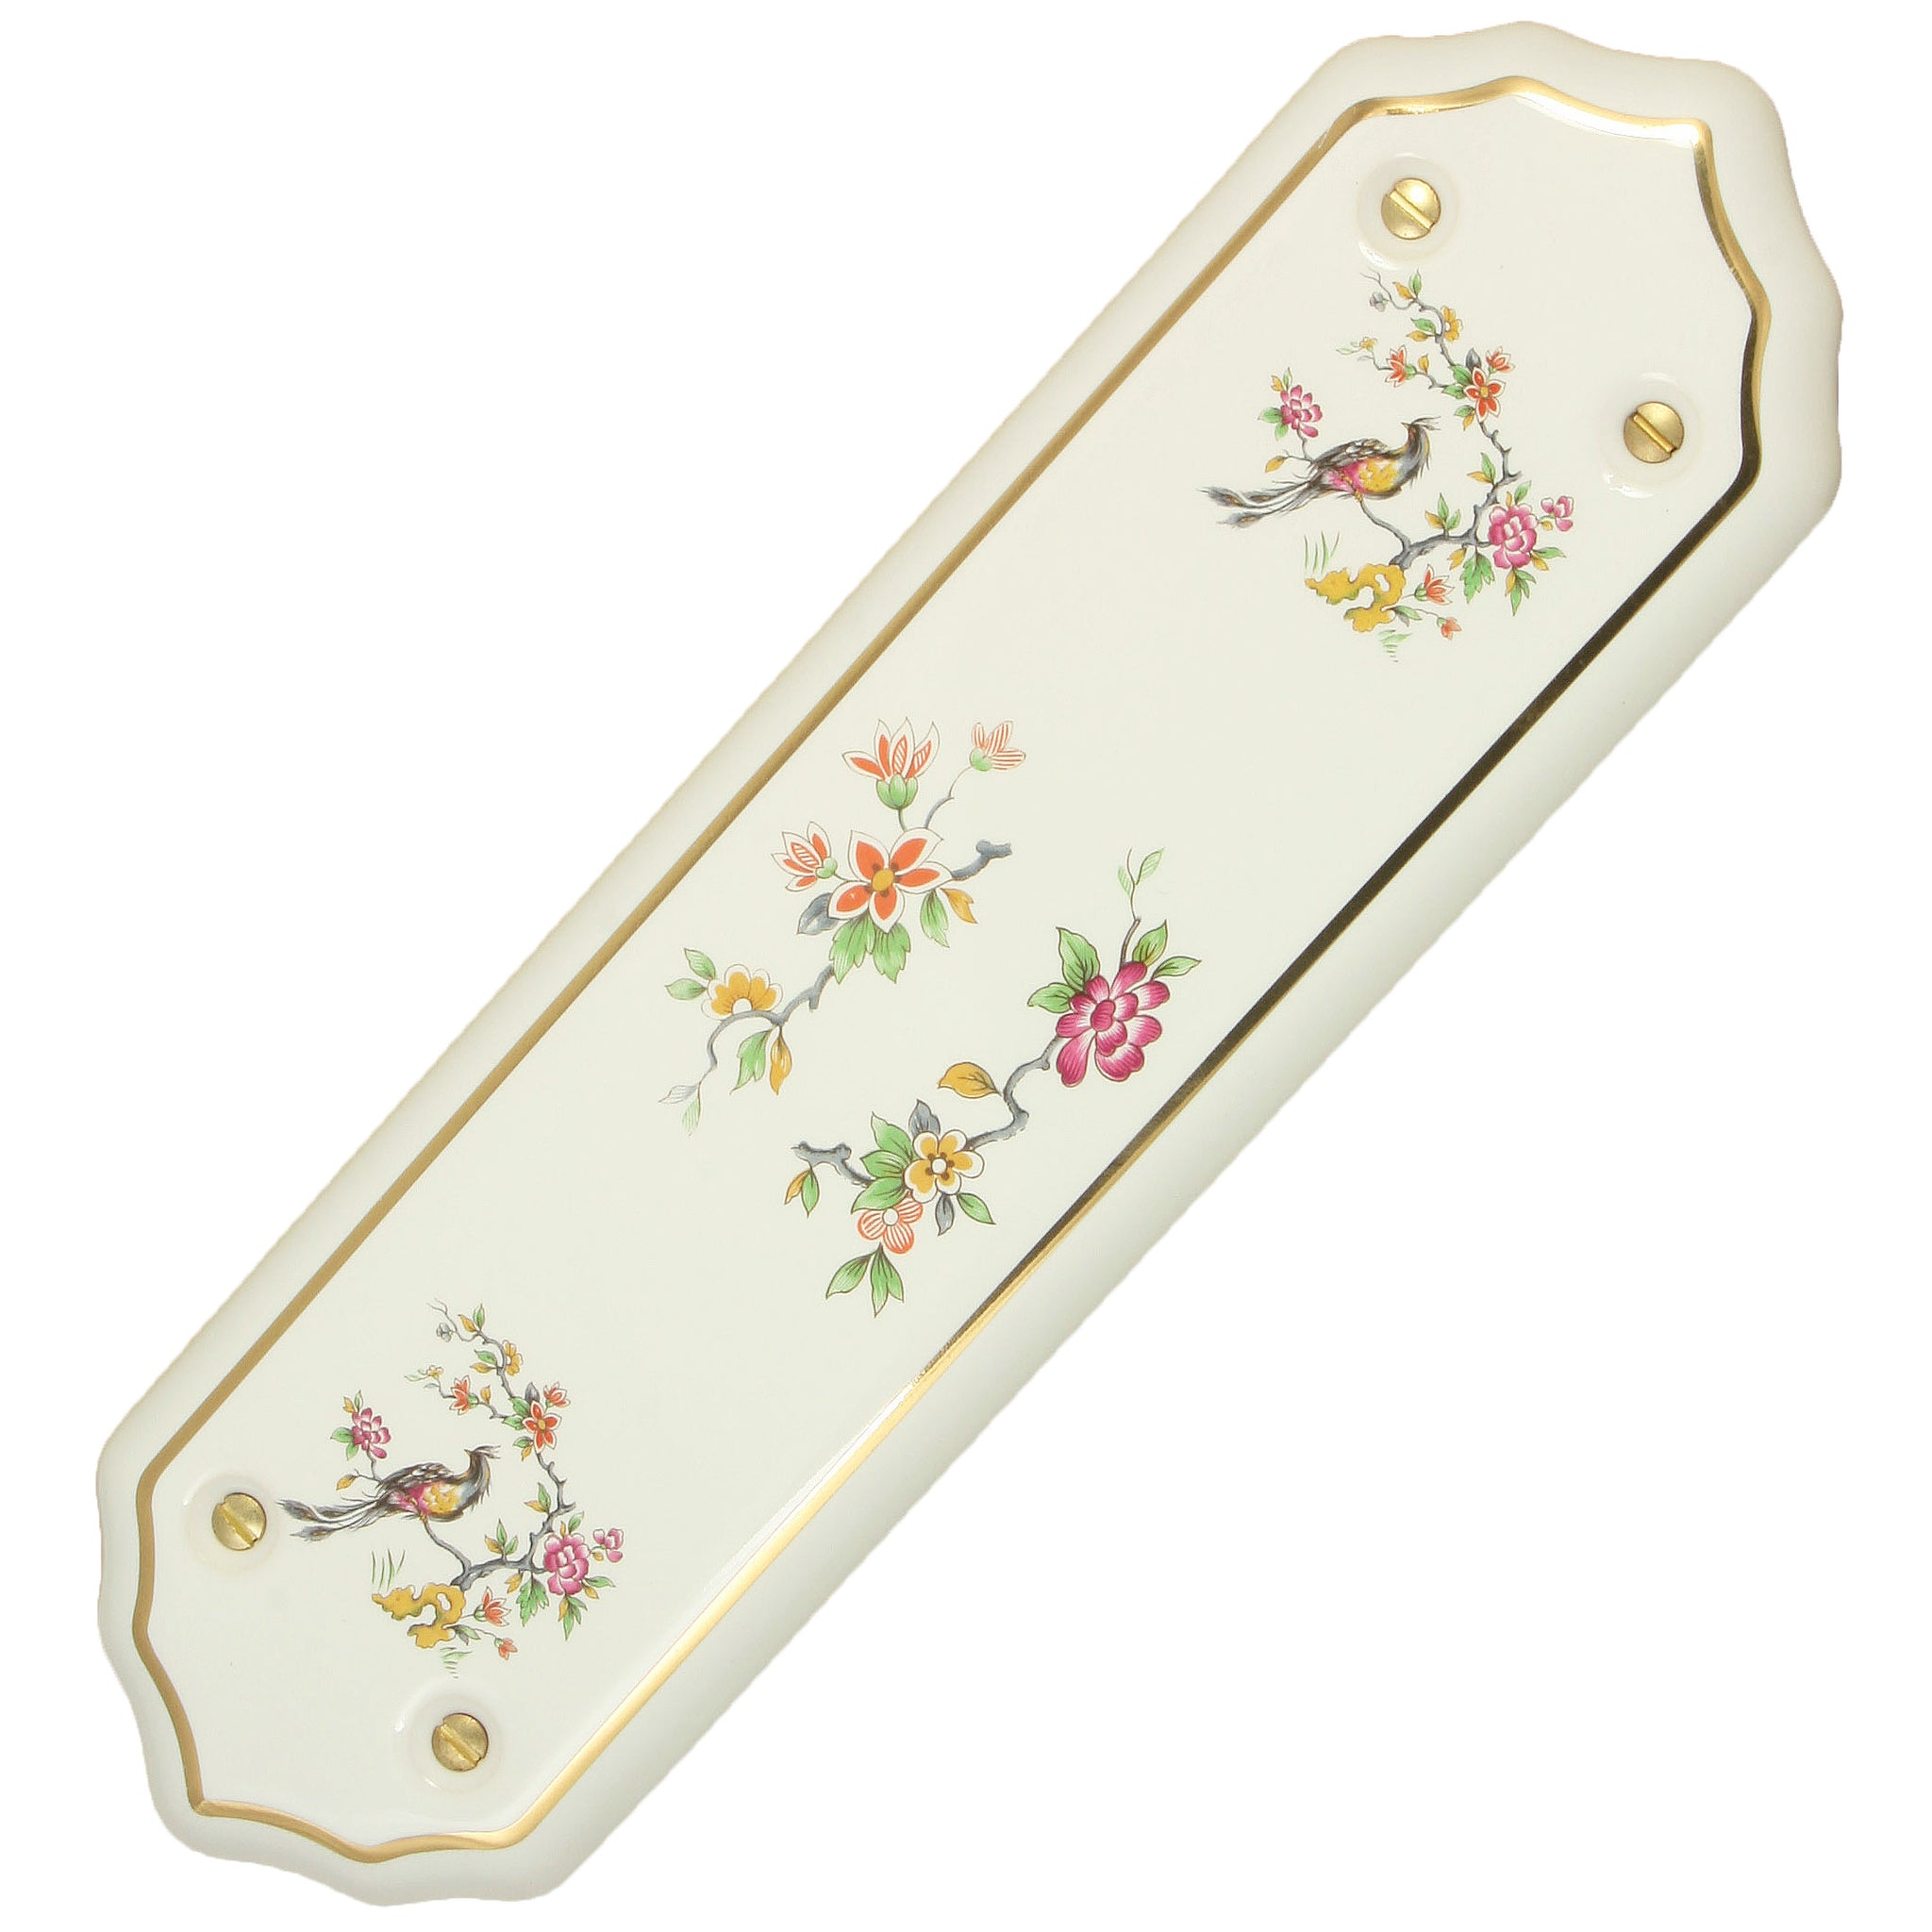 Festoon Porcelain / Ceramic Finger Plate